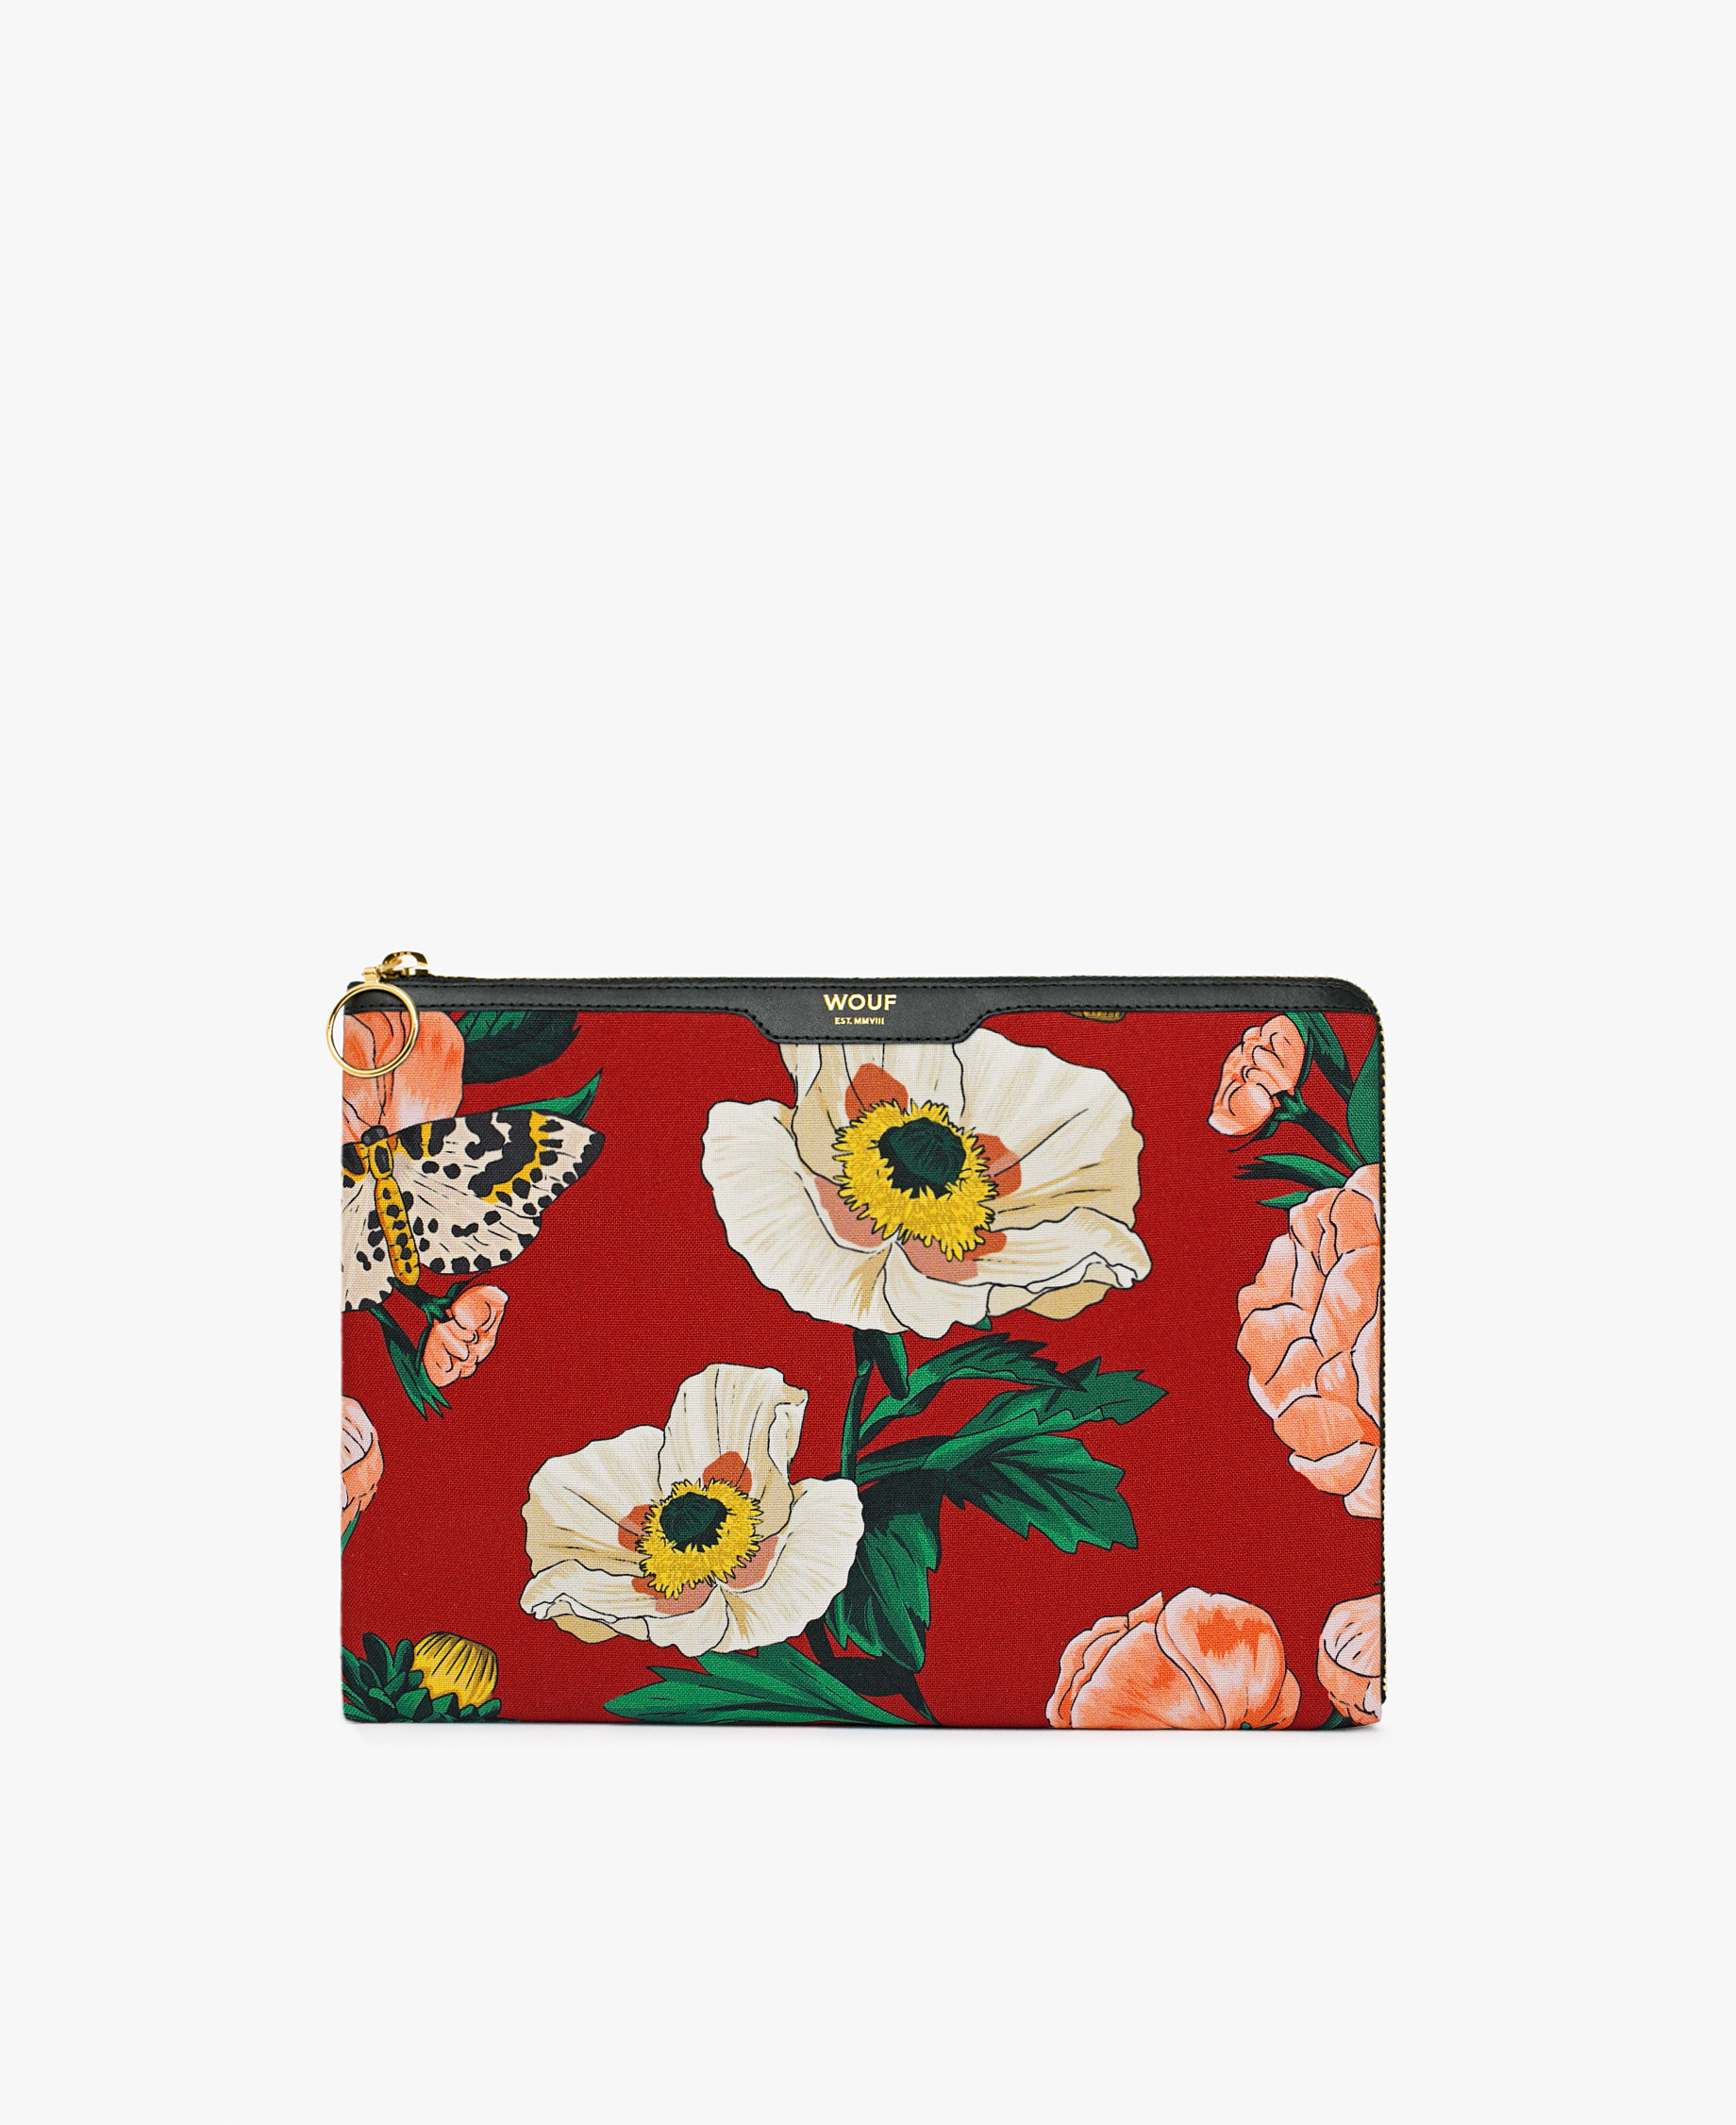 red ipad case with flowers